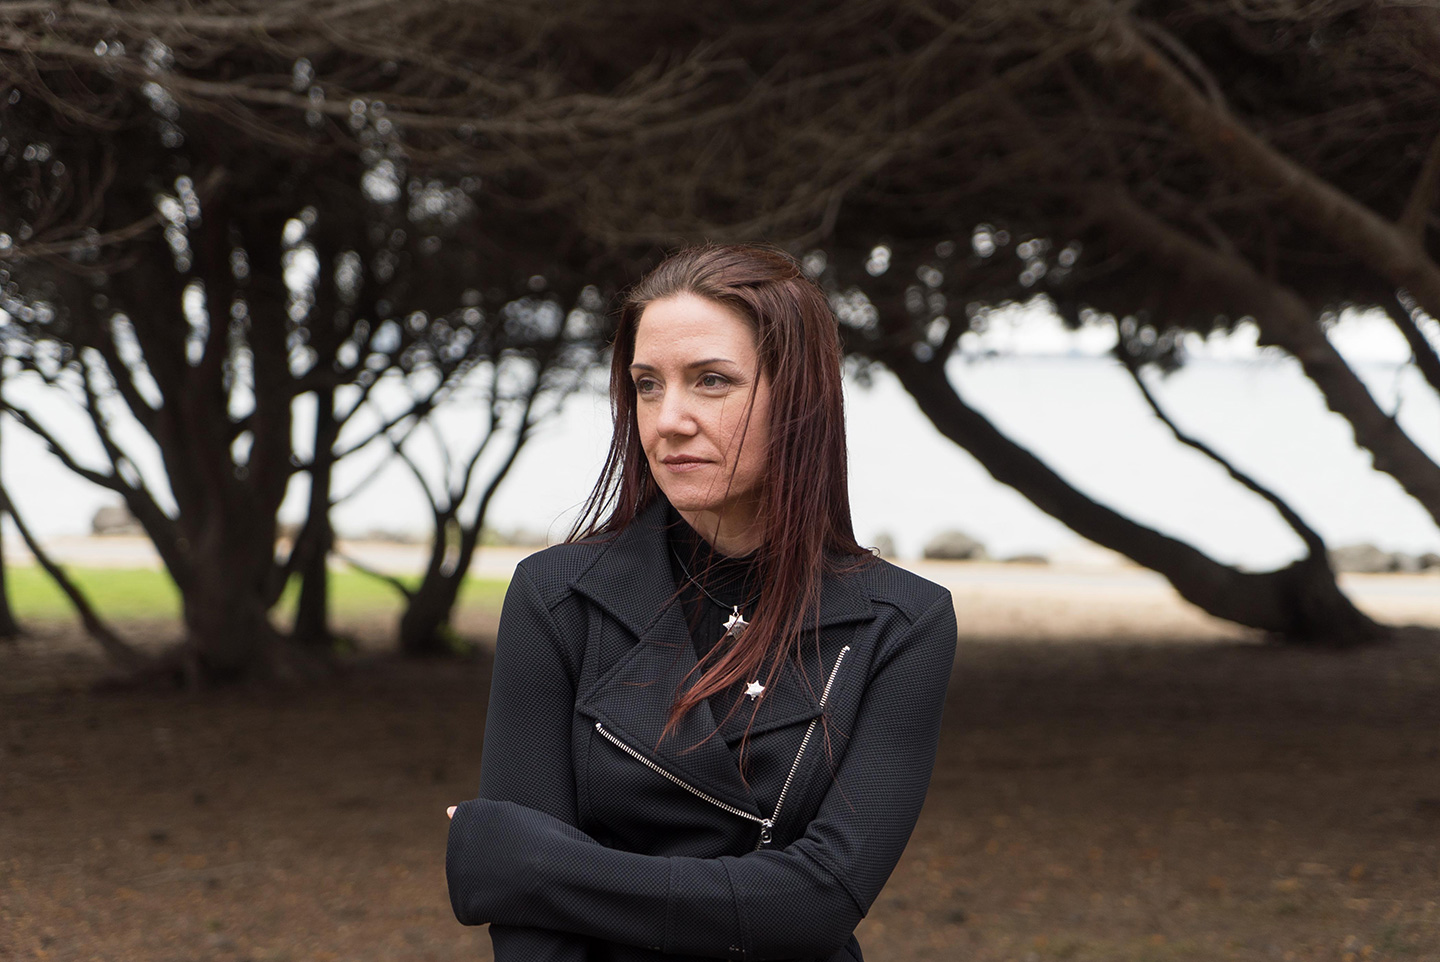 Dionne Wilson poses for a photograph at the Berkeley Marina in Berkeley, Calif. on Sunday, Sept. 11, 2016. Wilson is the widow of a San Leandro policeman who was shot to death by Irving Ramirez in 2007. Since Ramirez was sentenced to death, she's changed her view on the death penalty and now supports Proposition 62 which would abolish it.